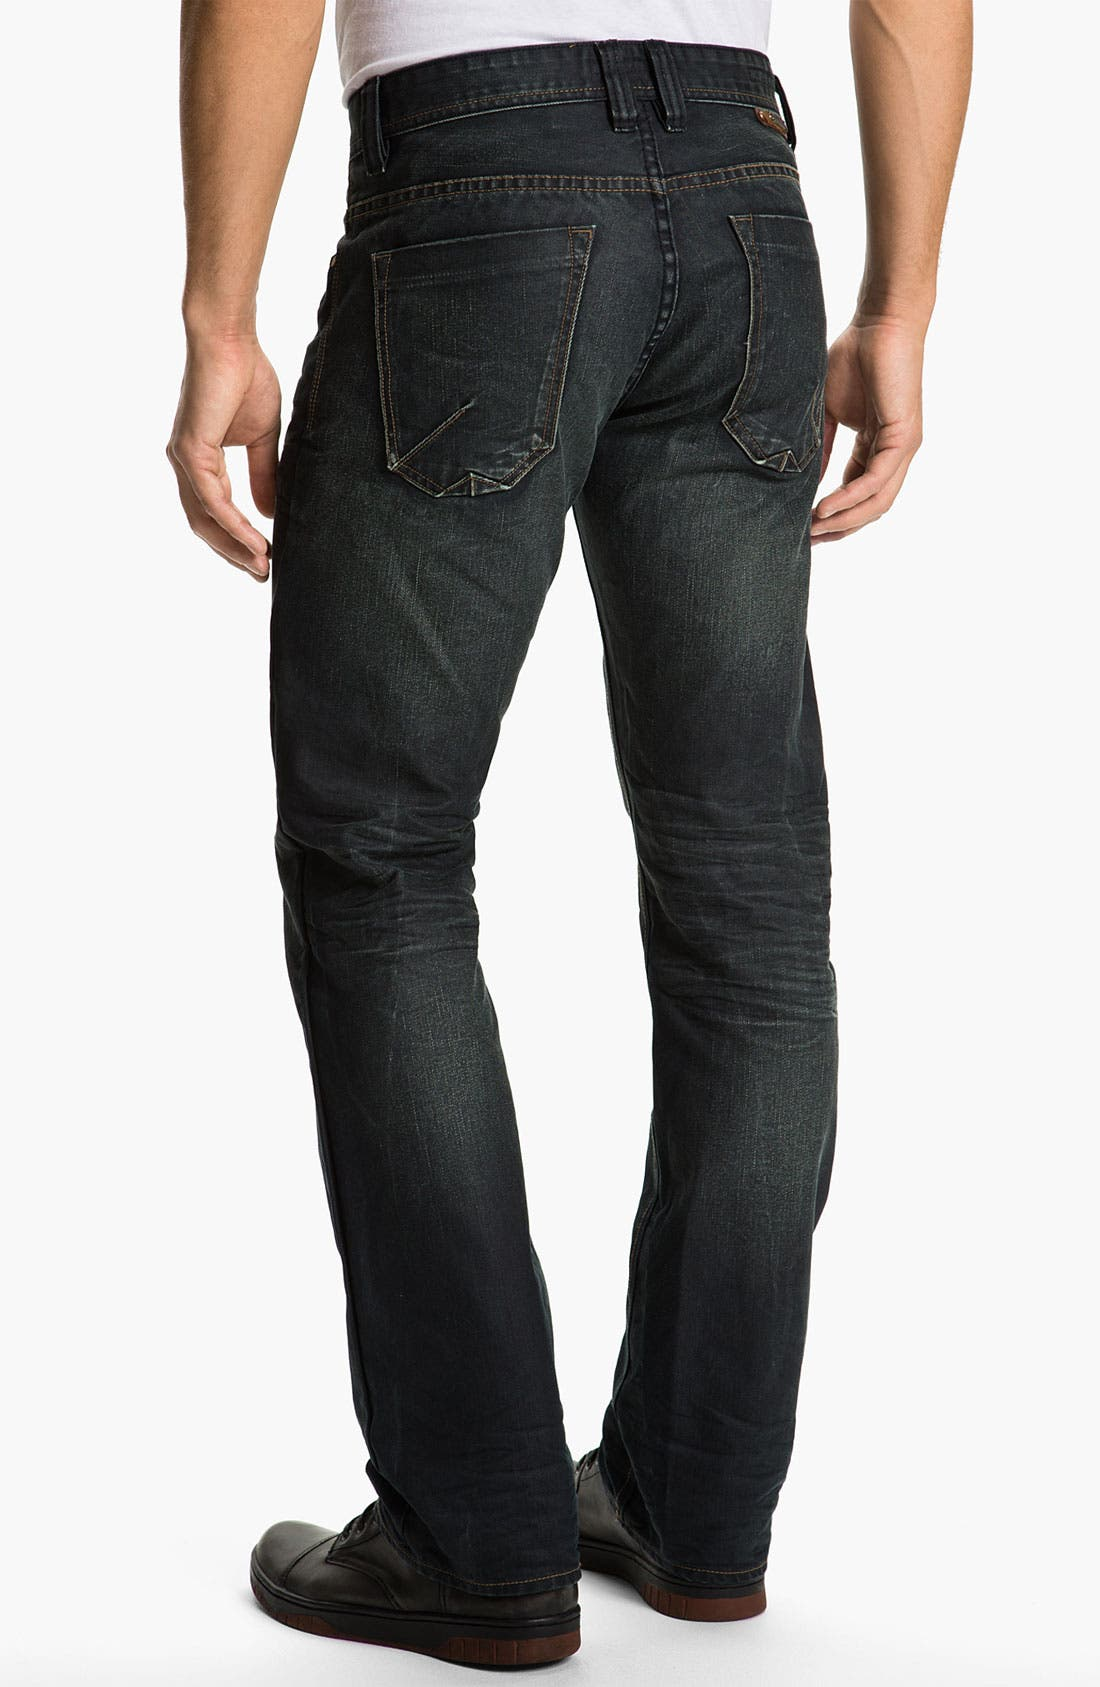 Main Image - Projek Raw Relaxed Straight Leg Jeans (Dark Blue)